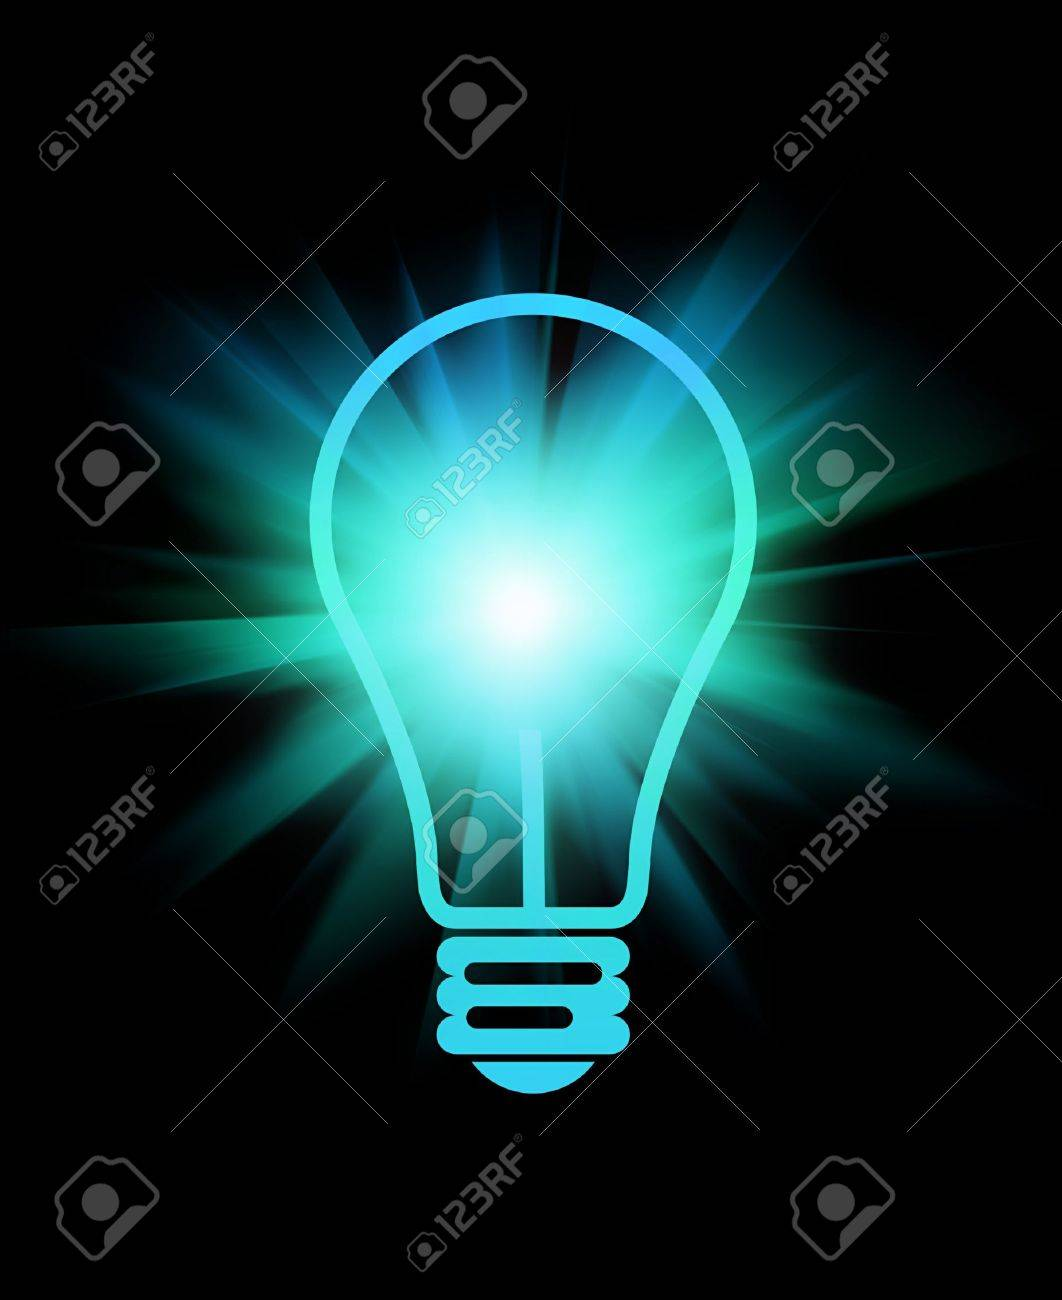 abstract light bulb with beams on black - 14292387